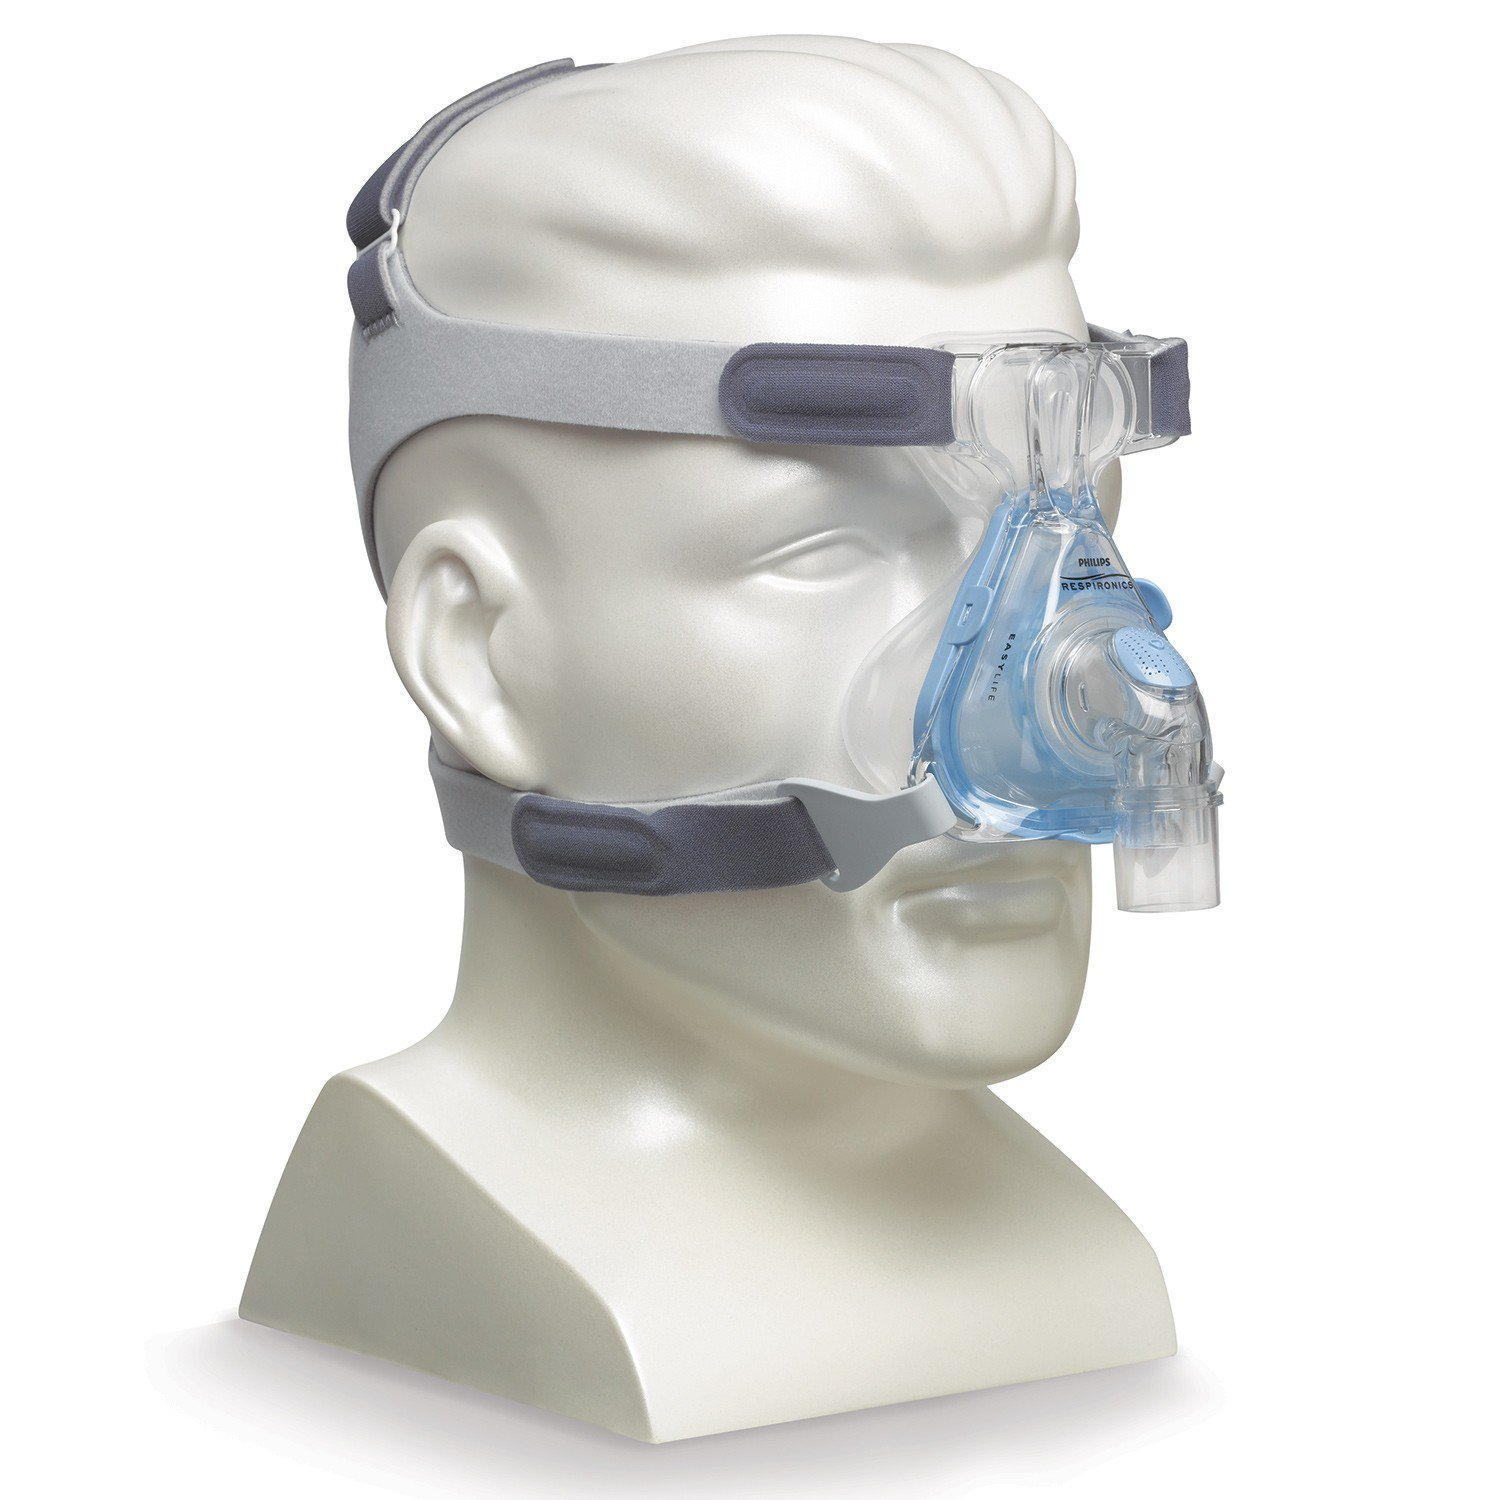 New Respironics EasyLife Nasal CPAP Mask and Headgear, Size P